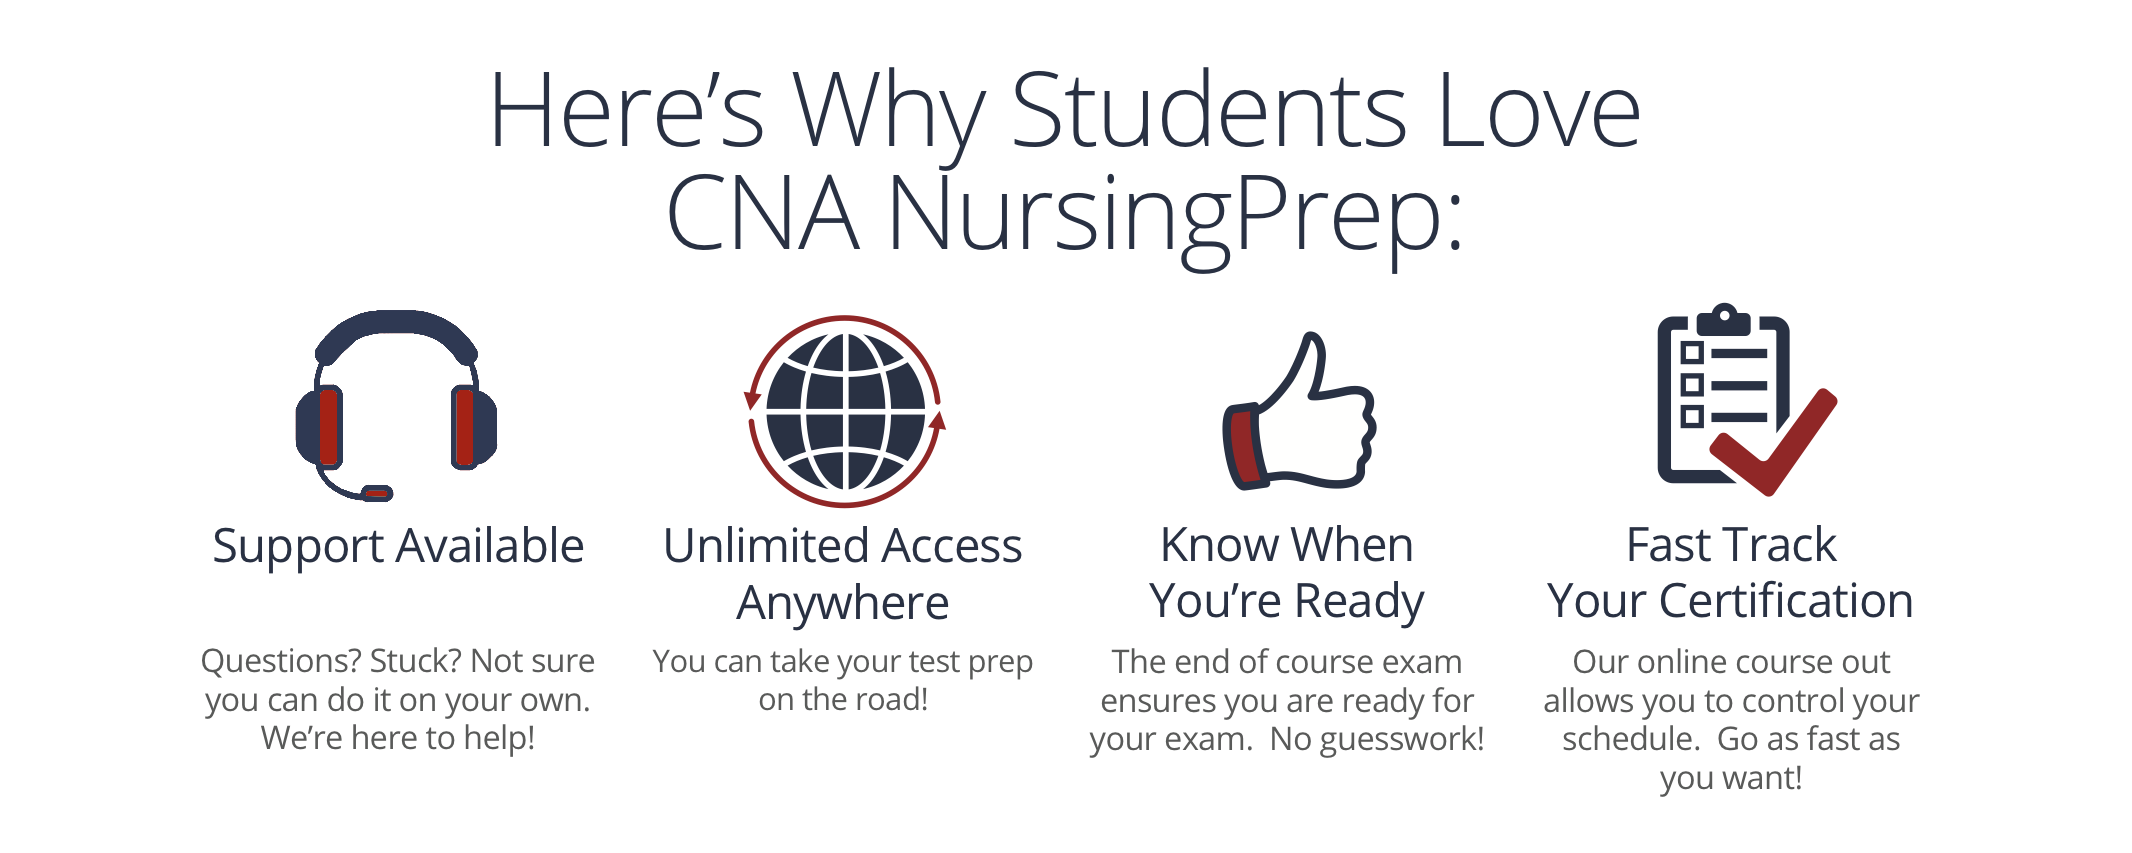 Certified Nursing Assistant Cna Nursingprep